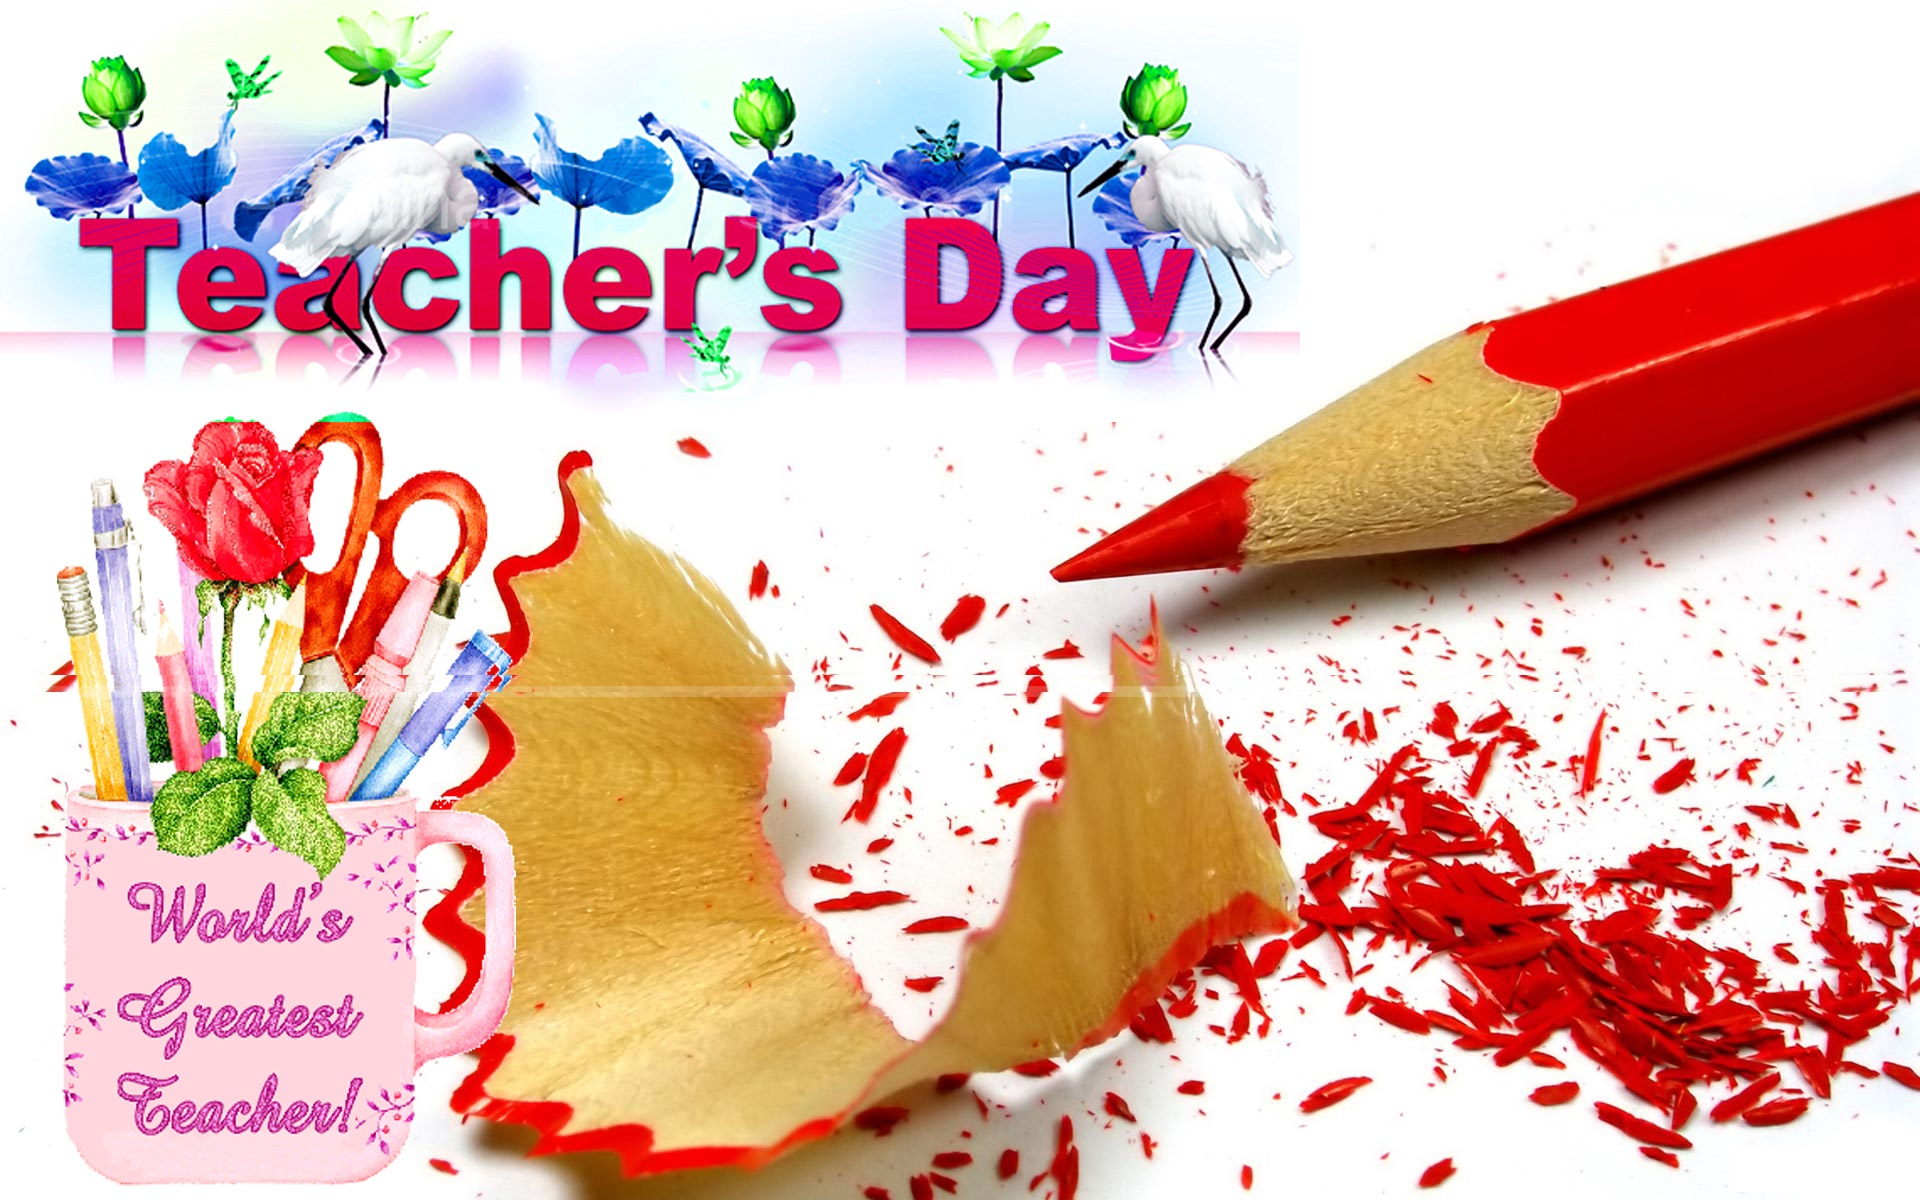 5th september Teachers Day Images GIF Wallpapers Photos Pics 1920x1200